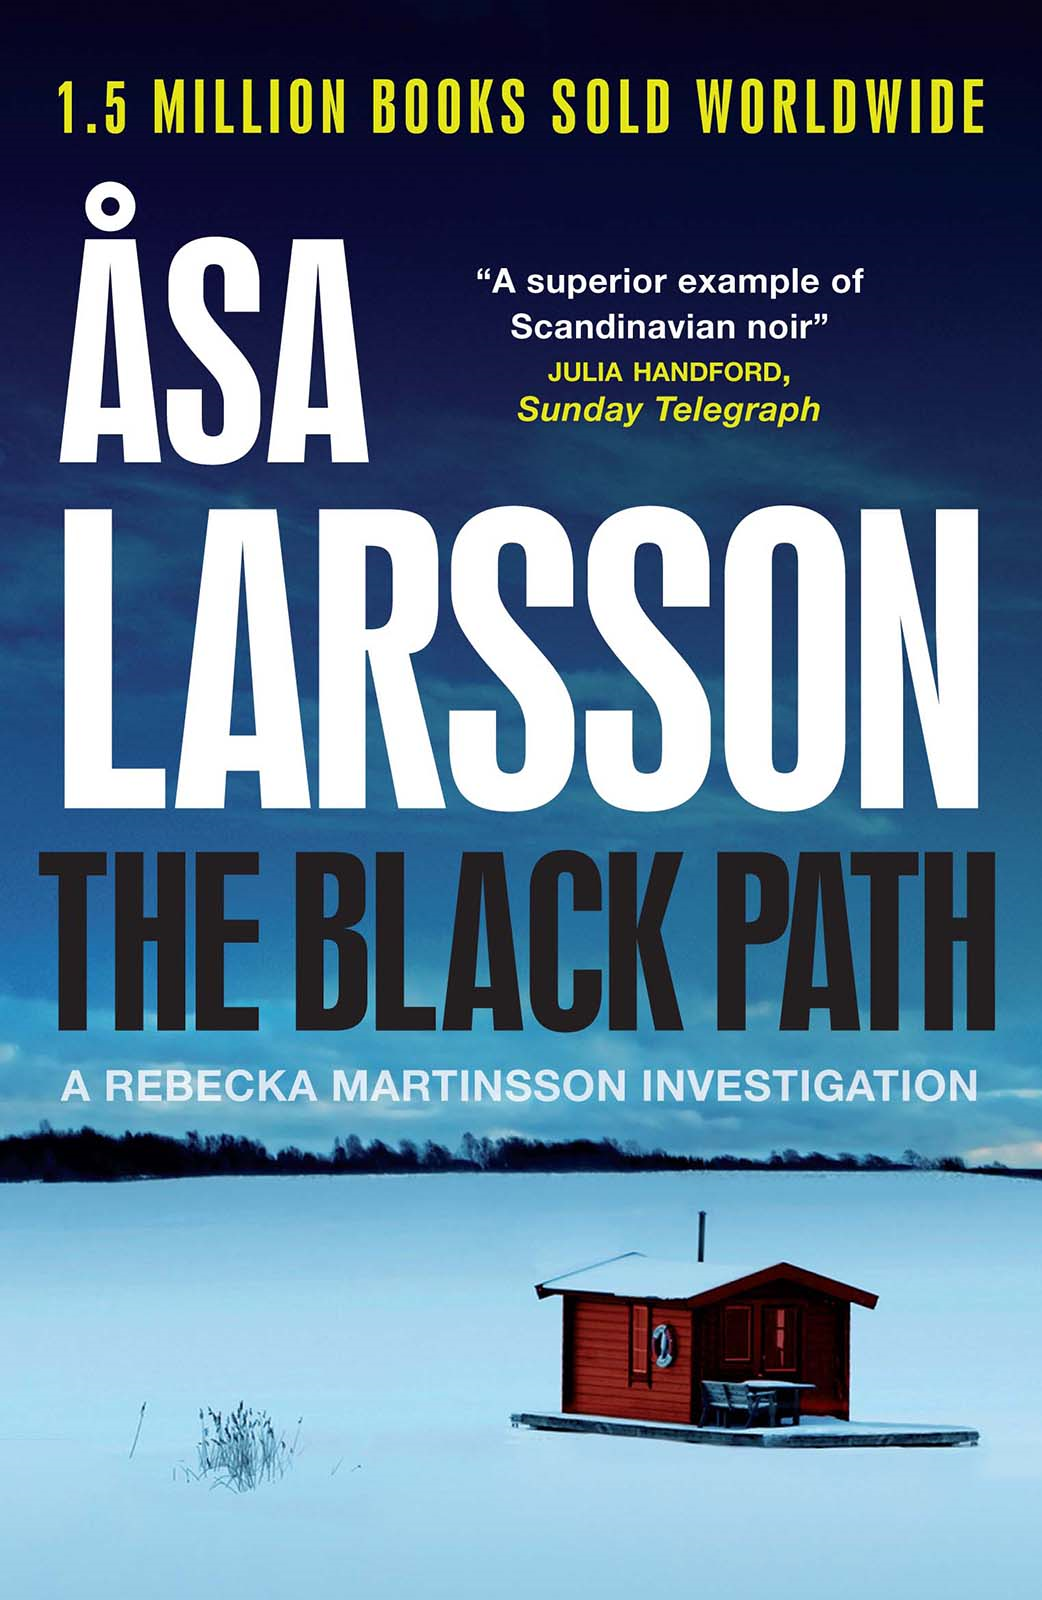 The Black Path: A Rebecka Martinsson Investigation A Rebecka Martinsson Investigation